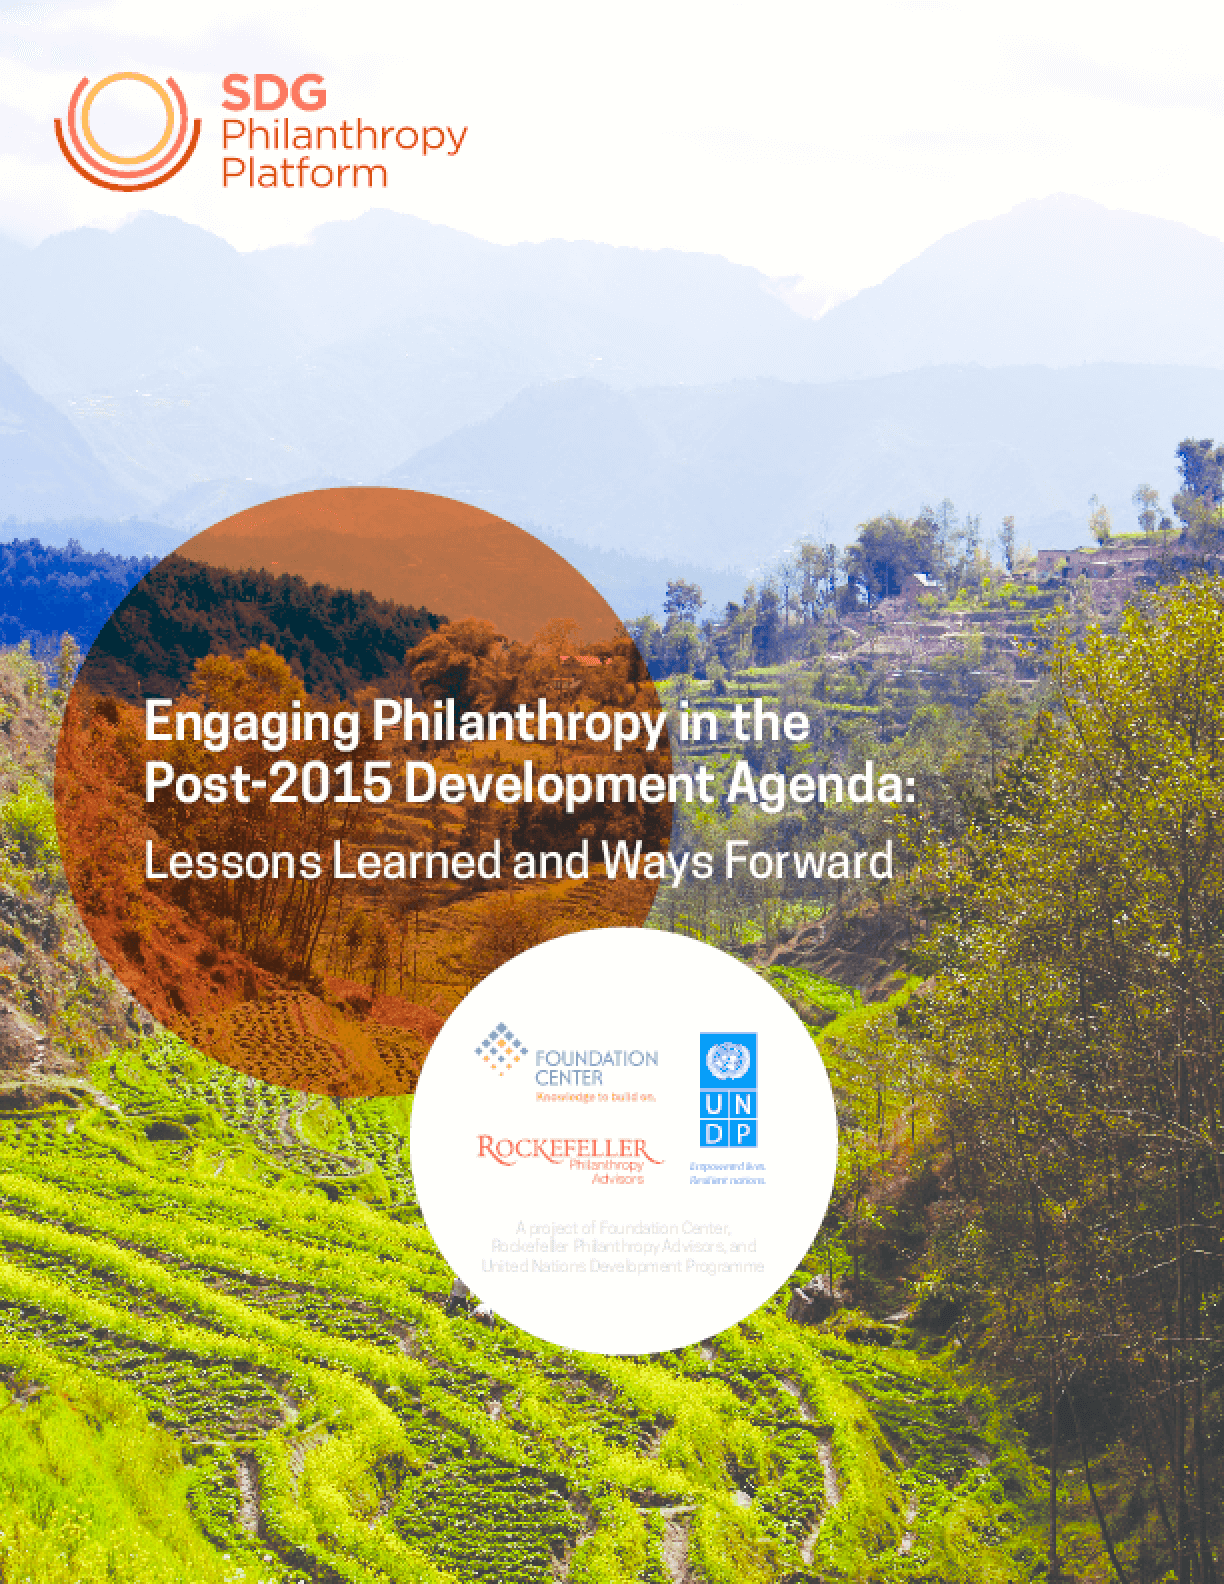 Engaging Philanthropy in the Post-2015 Development Agenda: Lessons Learned and Ways Forward